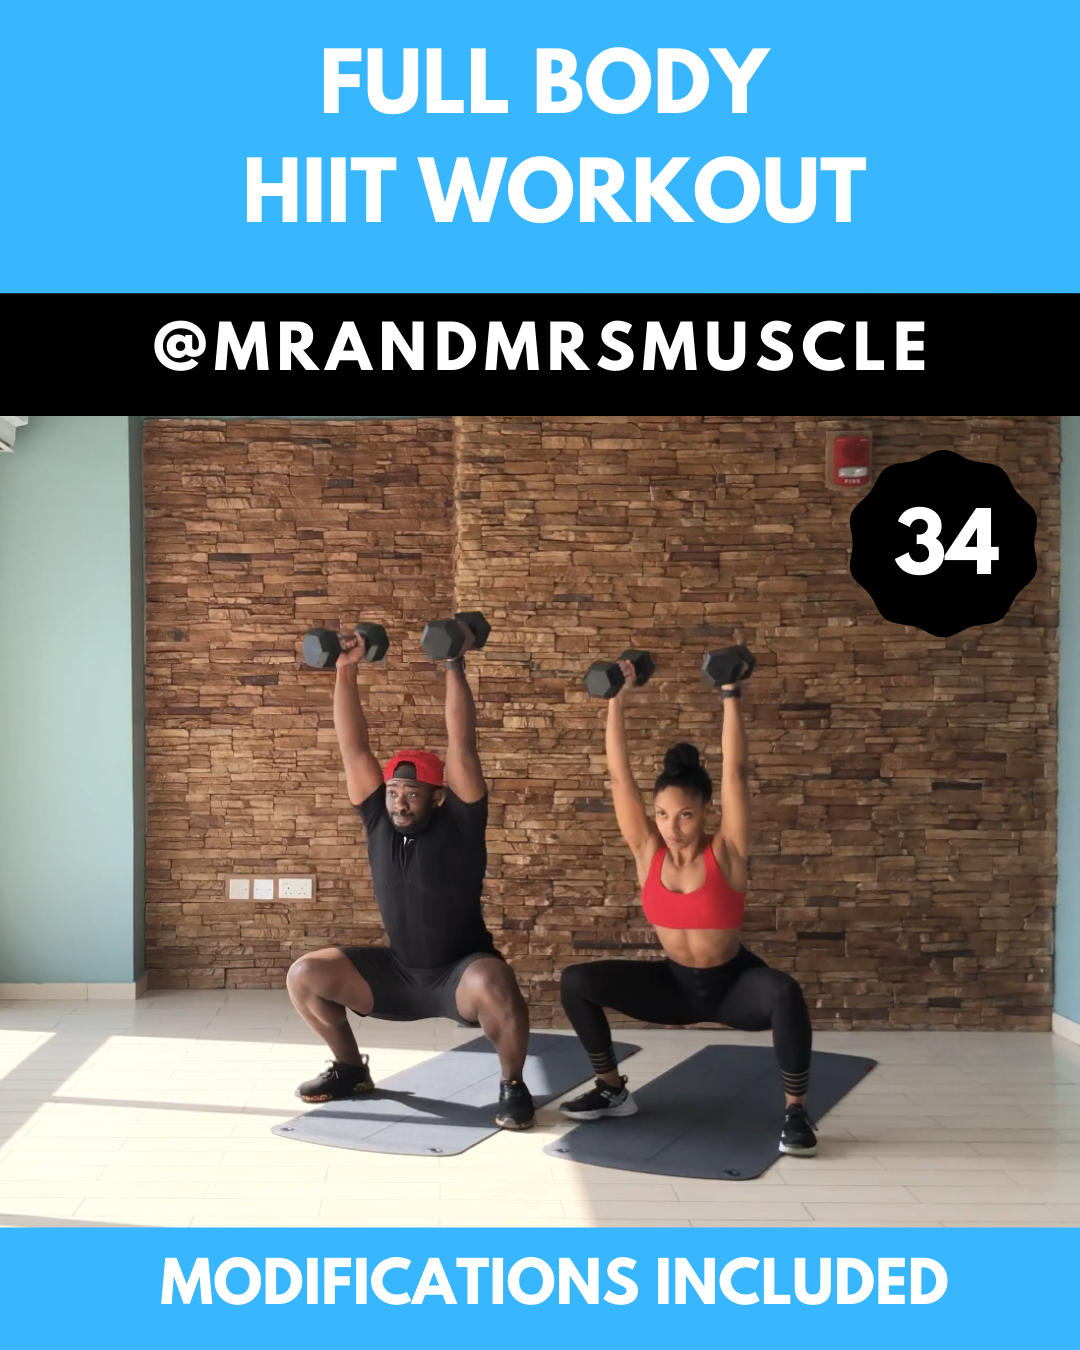 Total body HIIT workout routine with weights #fullbodyworkouts #hiit #hiitworkout #exercisefitness #...